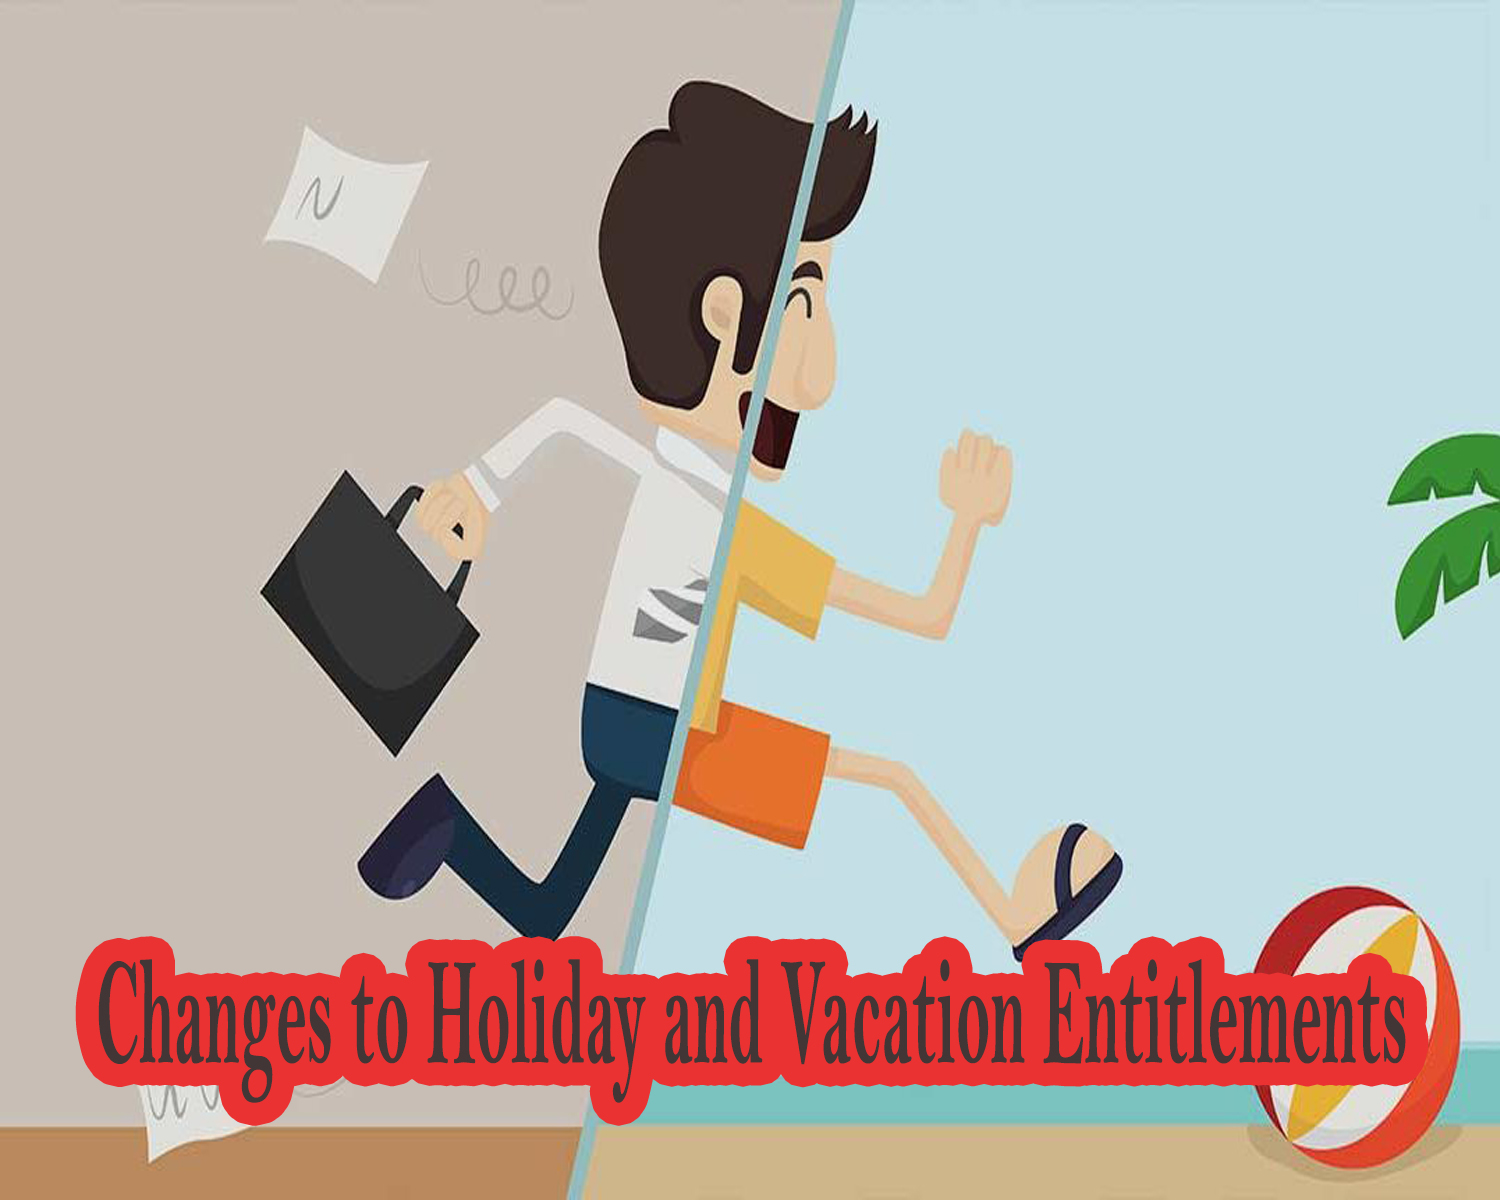 Changes to Holiday and Vacation Entitlements